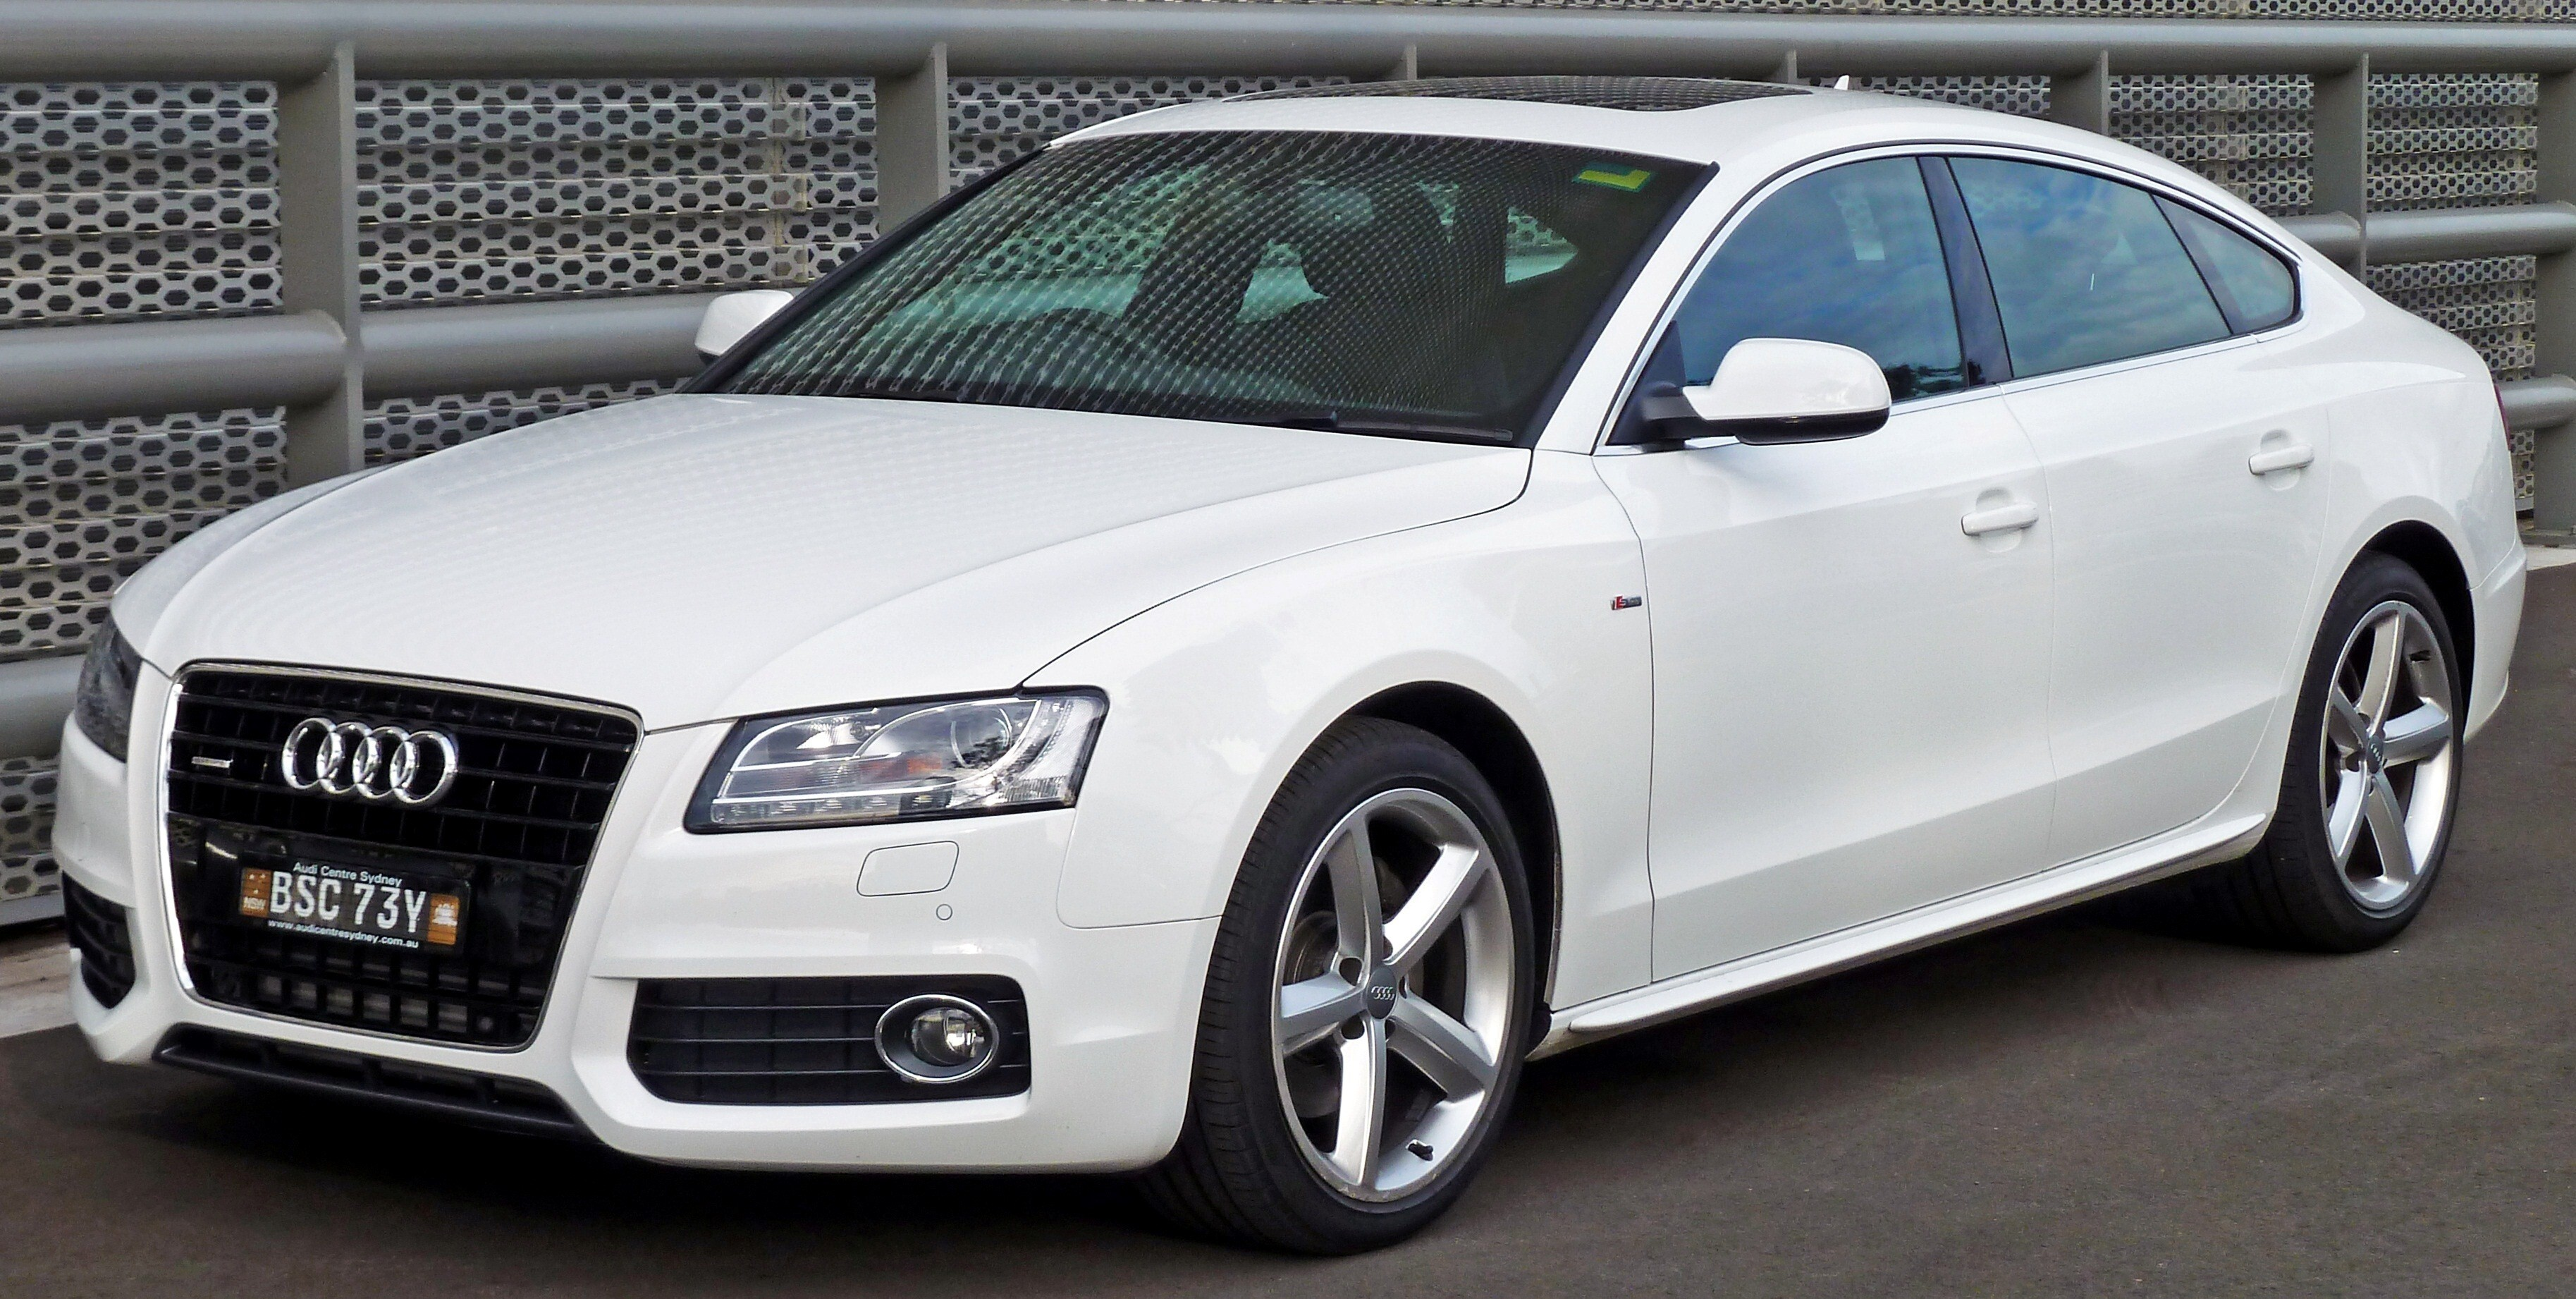 On 12 05 2013 Category Audi Downloads 985 Tags Audi A5 Cars Views 2648